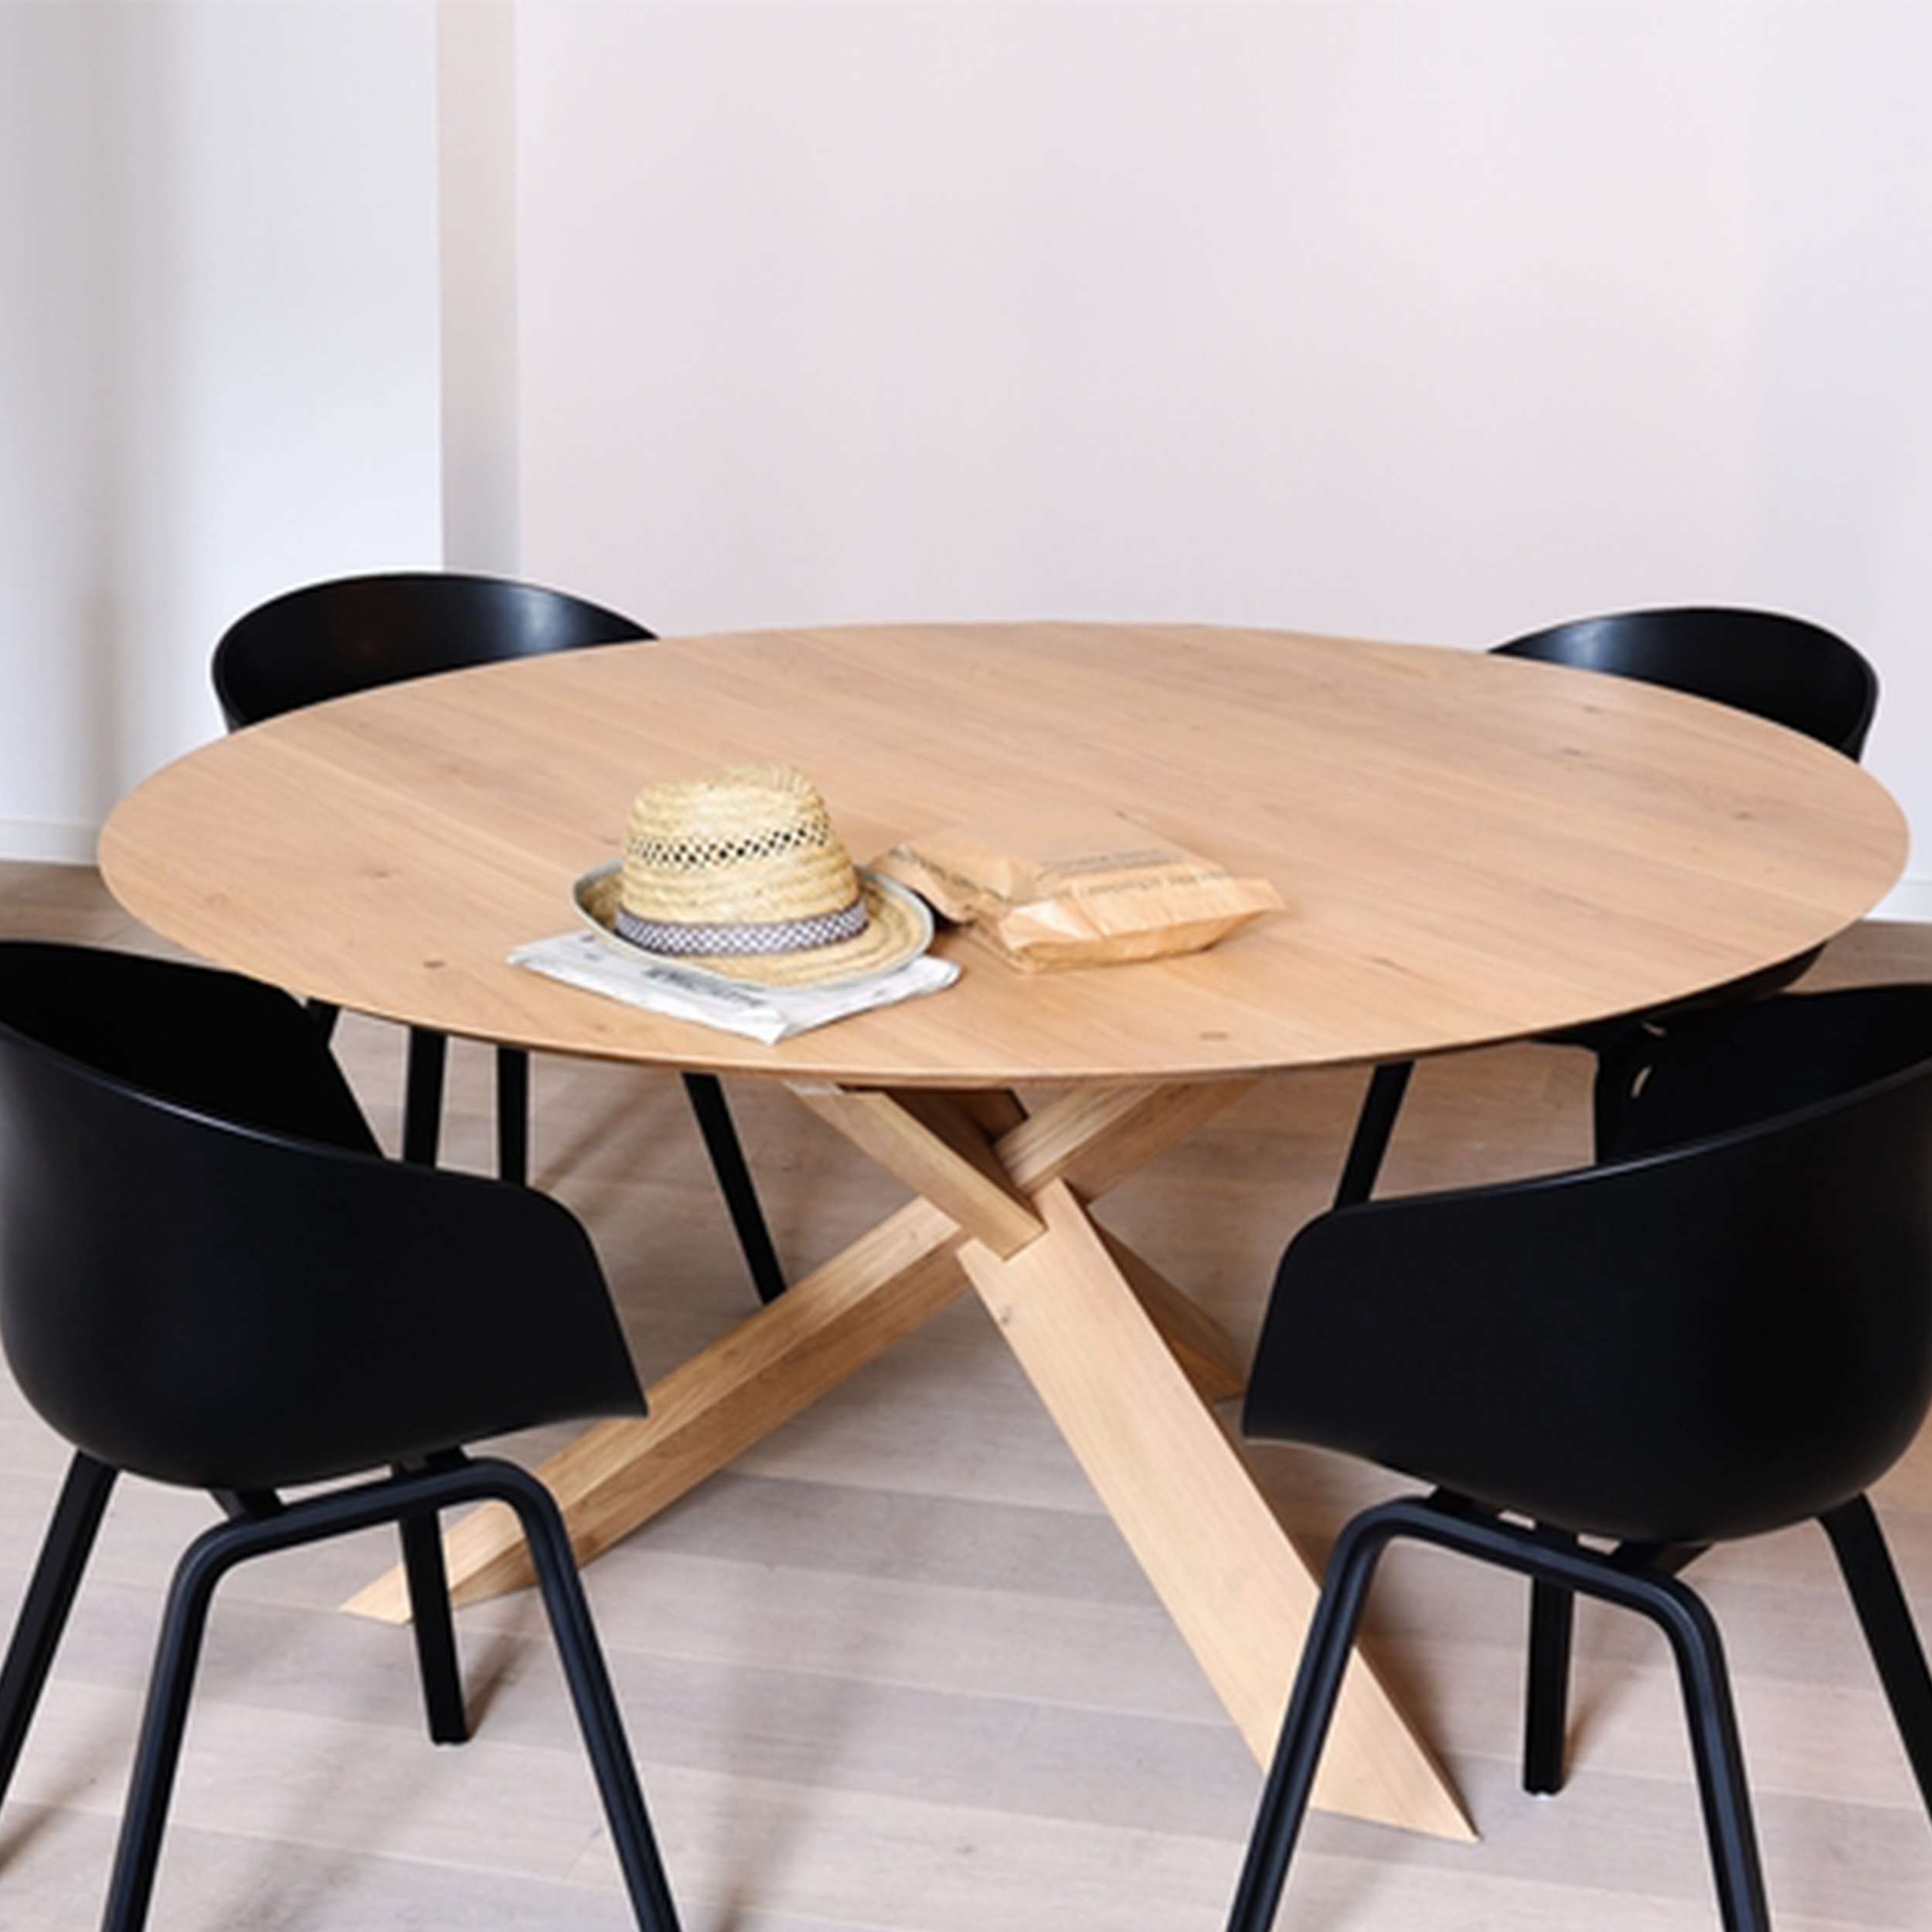 50164-Oak-Circle-dining-table-3.jpg.png